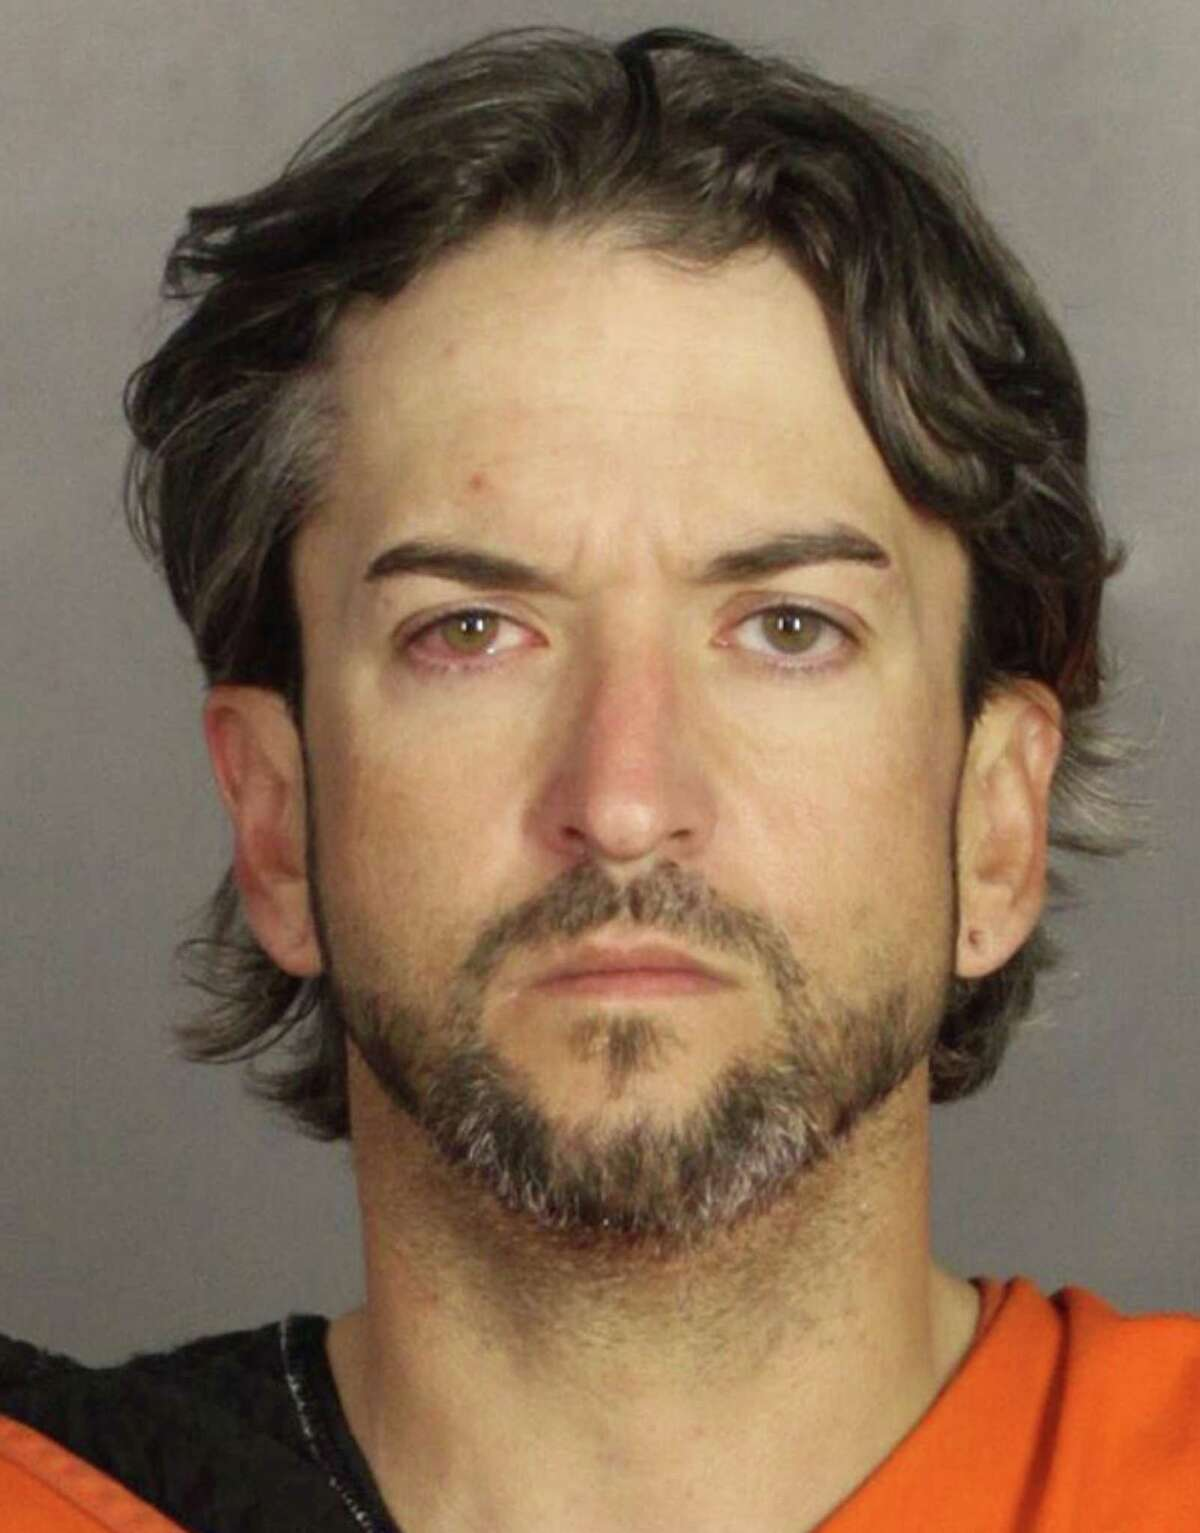 This is a 2014 mug shot from Limestone County of Marcus Pilkington on drug charges. He is now the last Million Dollar Man in Waco biker case, where he is the only biker left who is locked up on $1 million bail pending the outcome of charges against him.